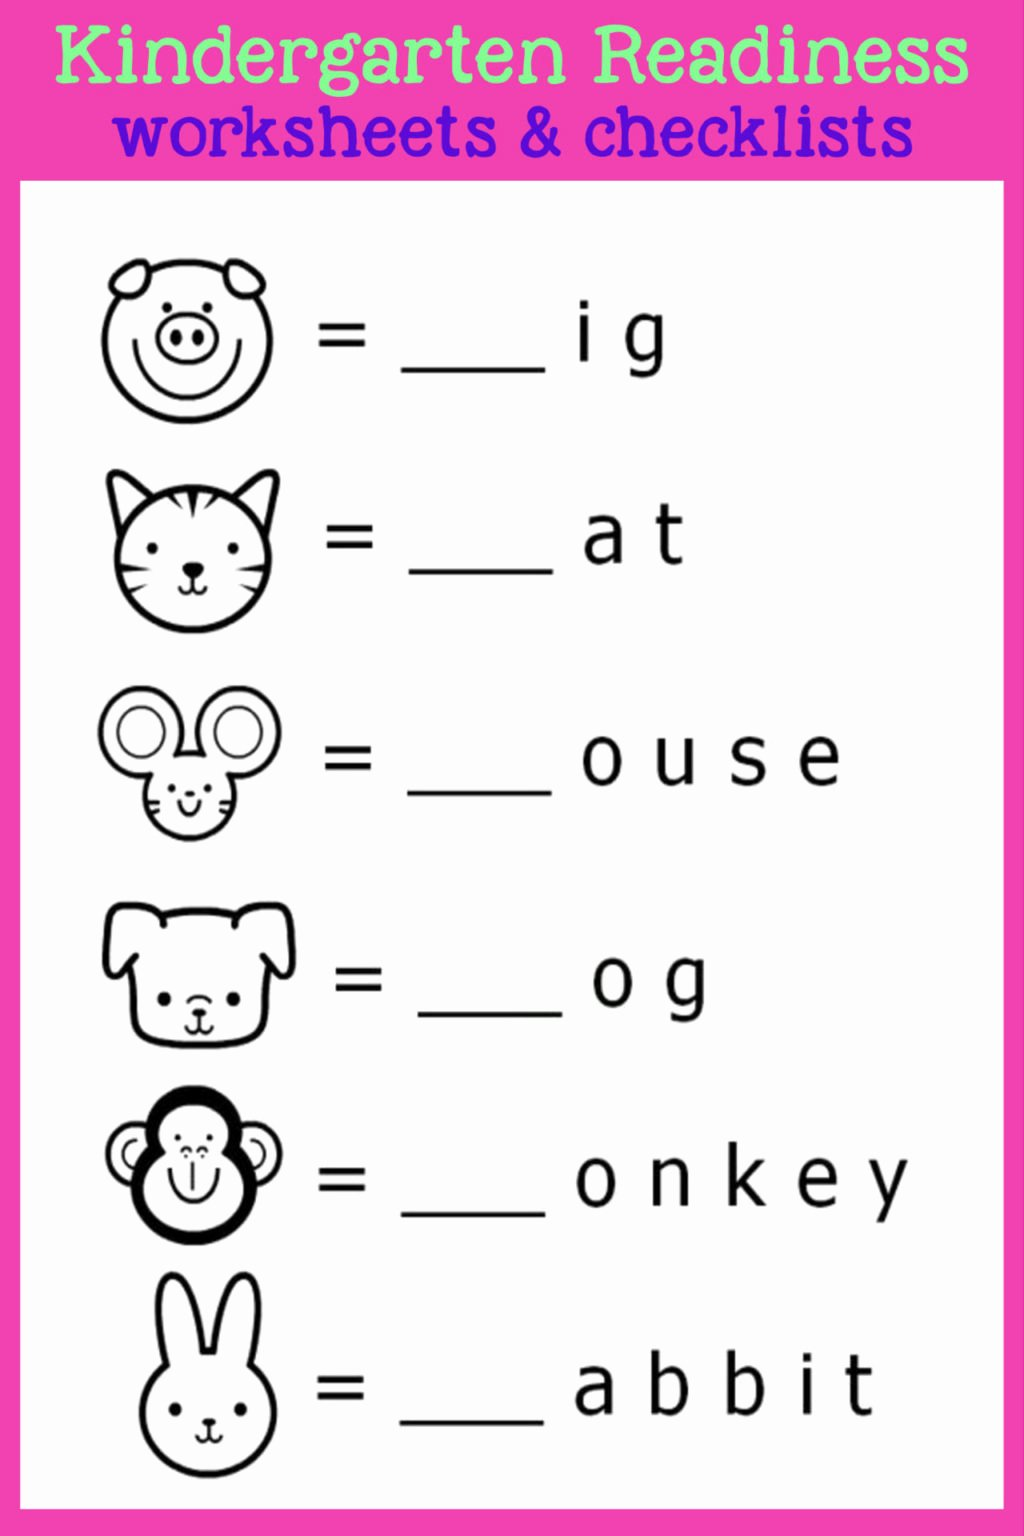 Readiness Worksheets for Preschoolers top Worksheet Kindergarten Readiness Checklists Free Printable